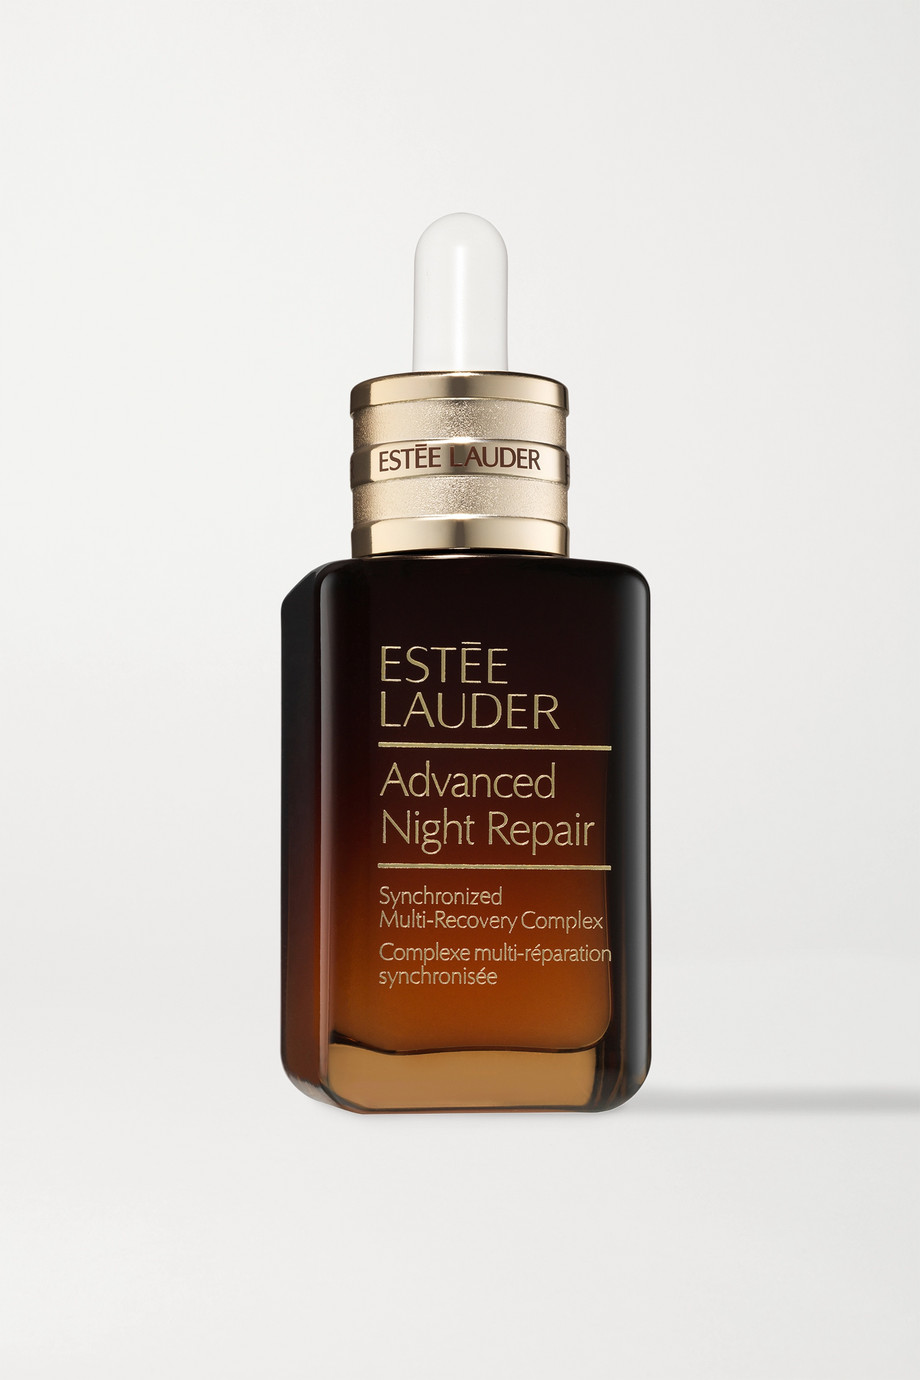 Estée Lauder Complexe multi-réparation synchronisée Advanced Night Repair, 75 ml